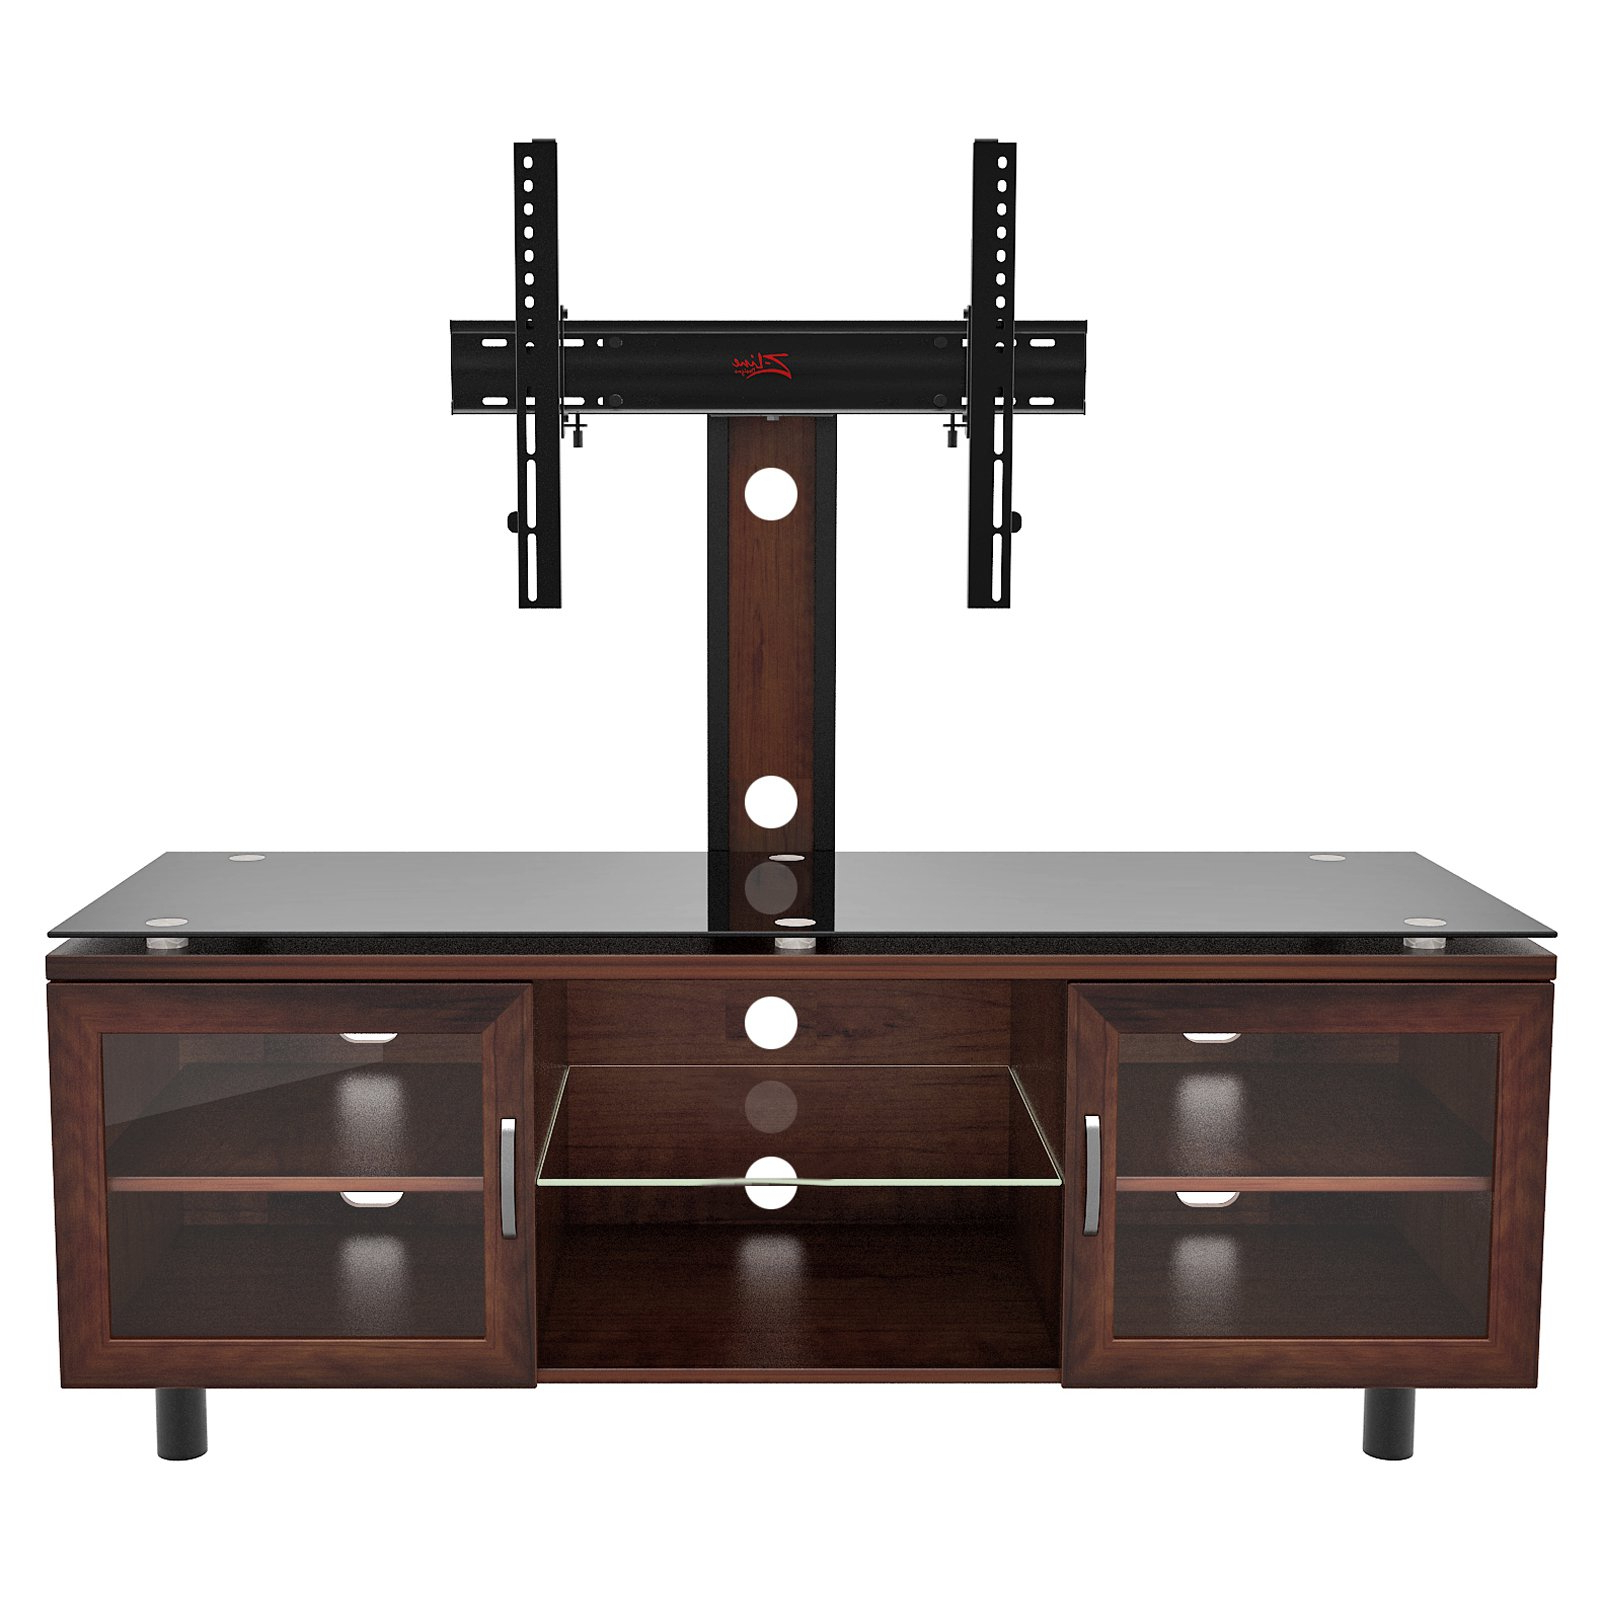 "Popular Positano Tv Stand With Integrated Mount For Tvs Up To 70"", Espresso With Regard To 65 Inch Tv Stands With Integrated Mount (View 2 of 20)"